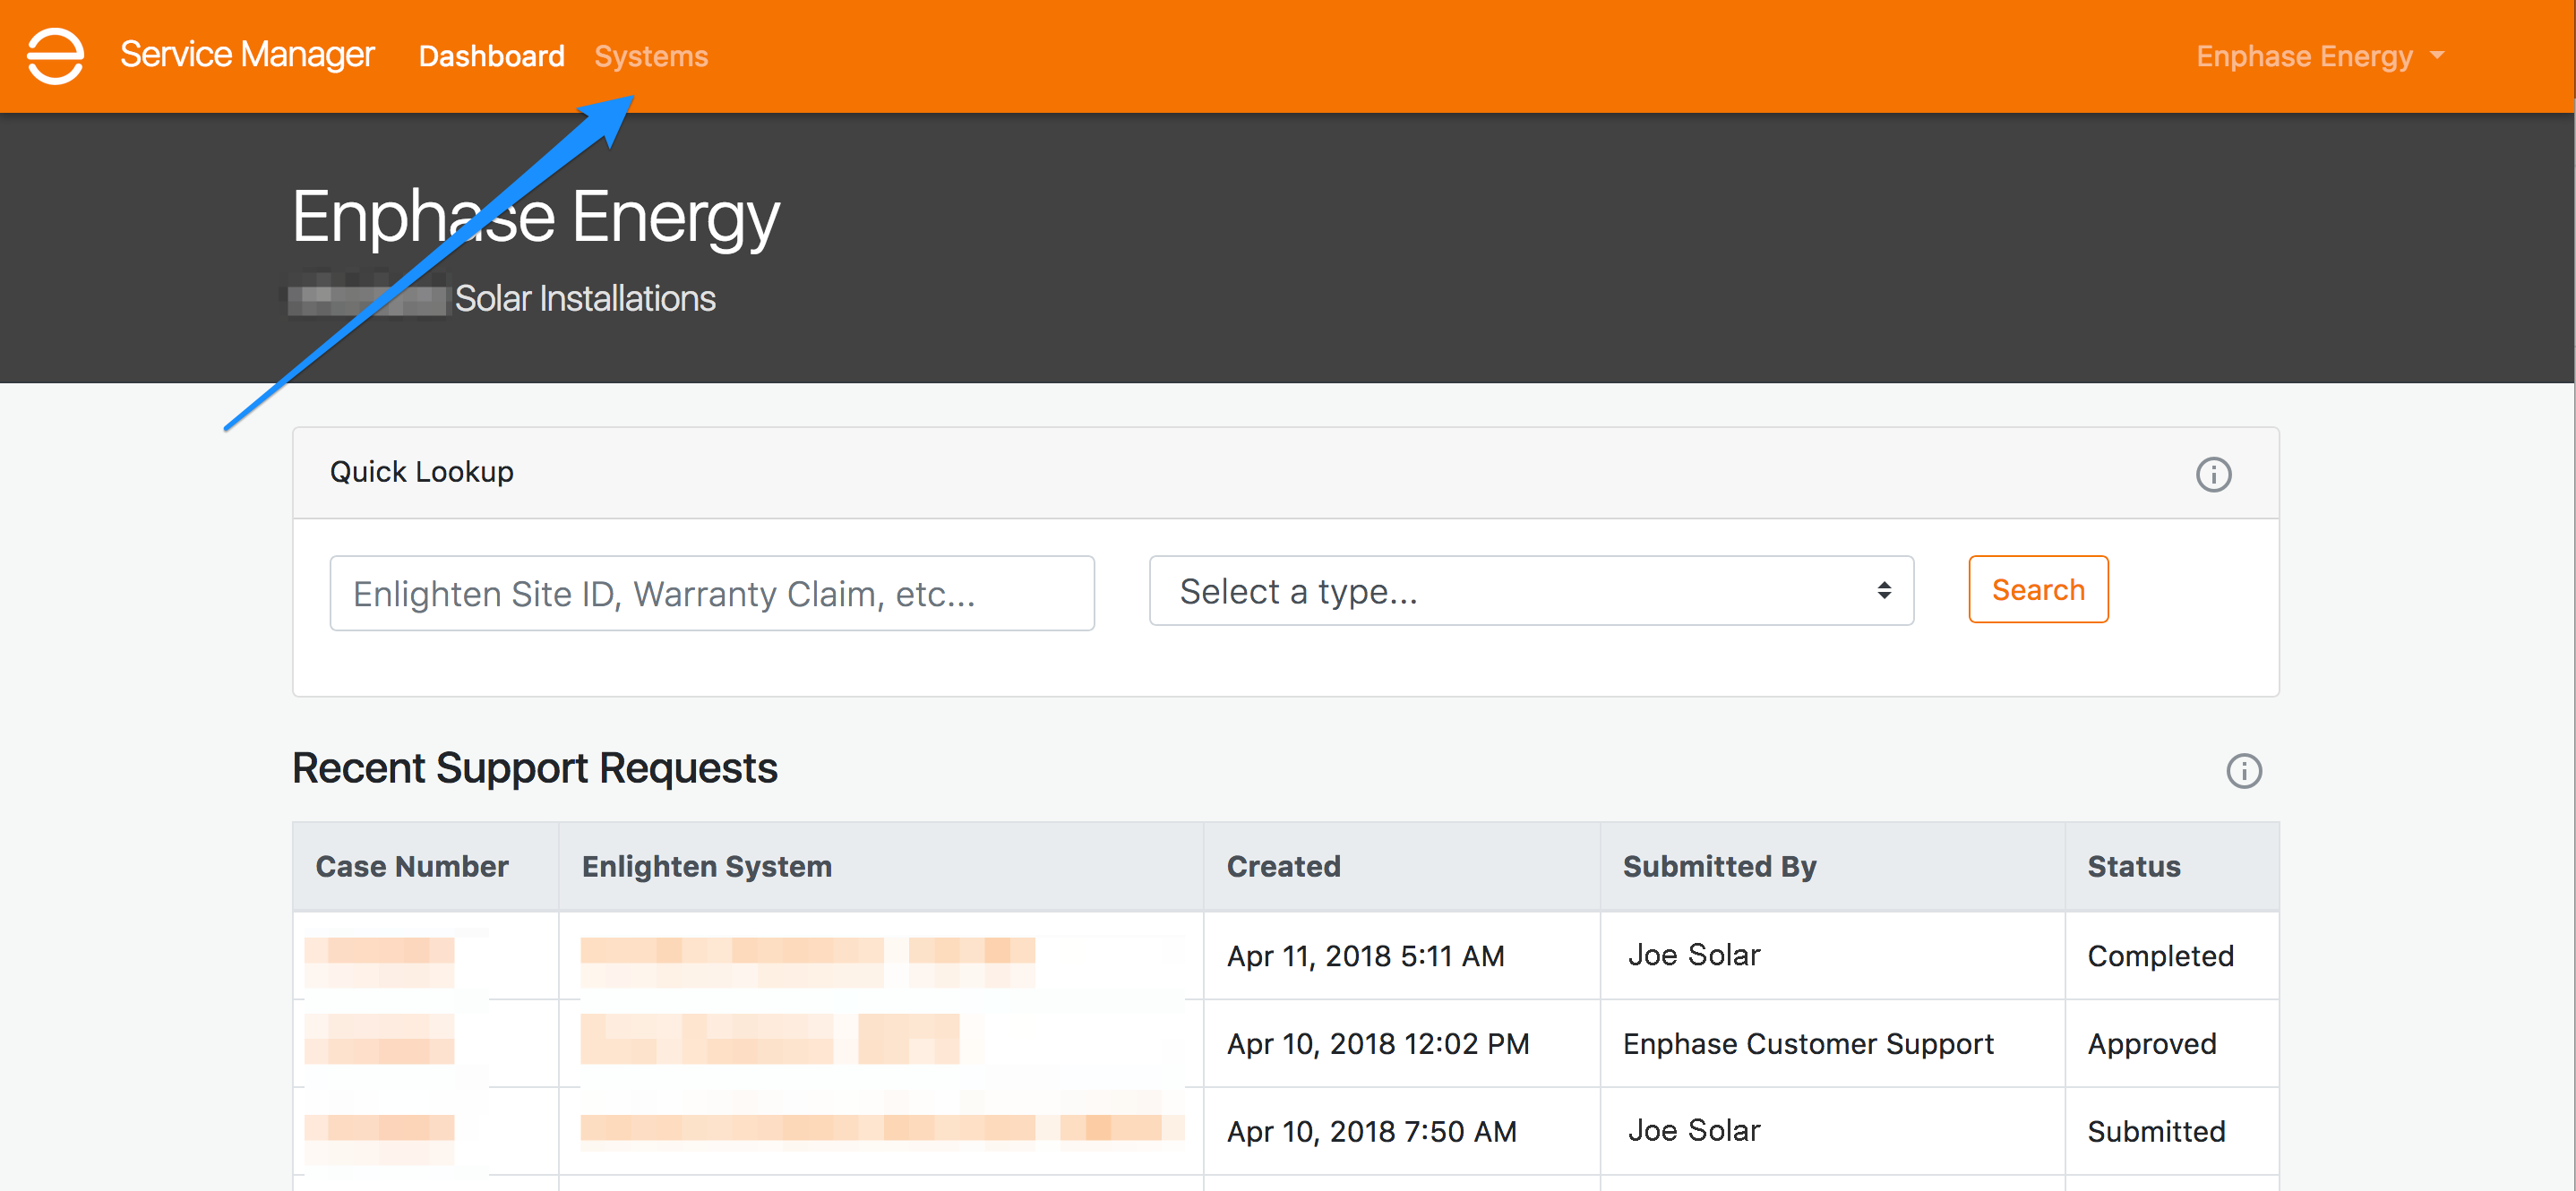 Service Manager dashboard - systems nav item